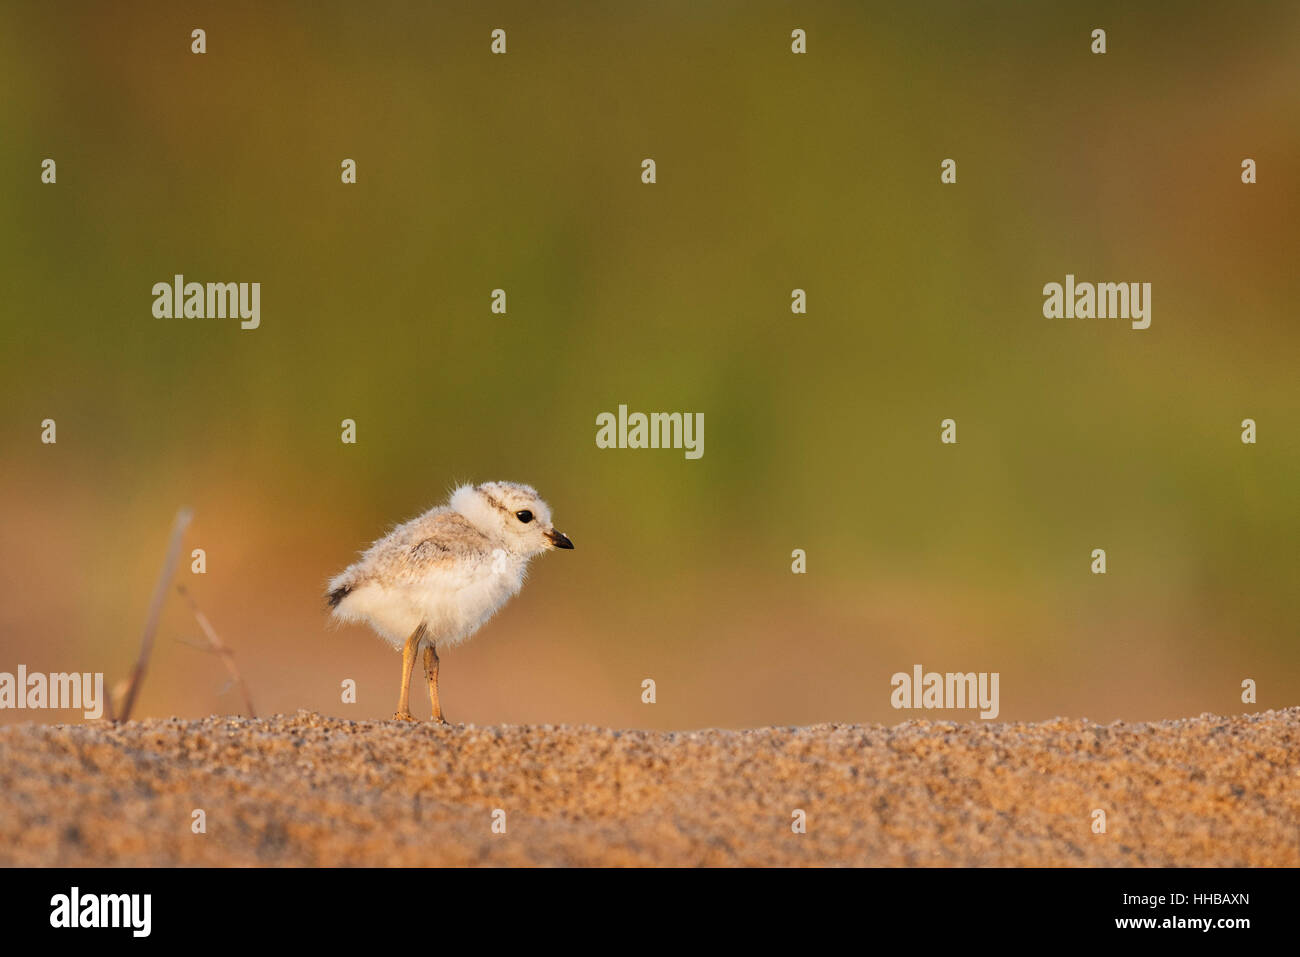 A tiny and adorable Piping Plover chick stands on a sandy beach as the first morning sun shines on it with a smooth - Stock Image